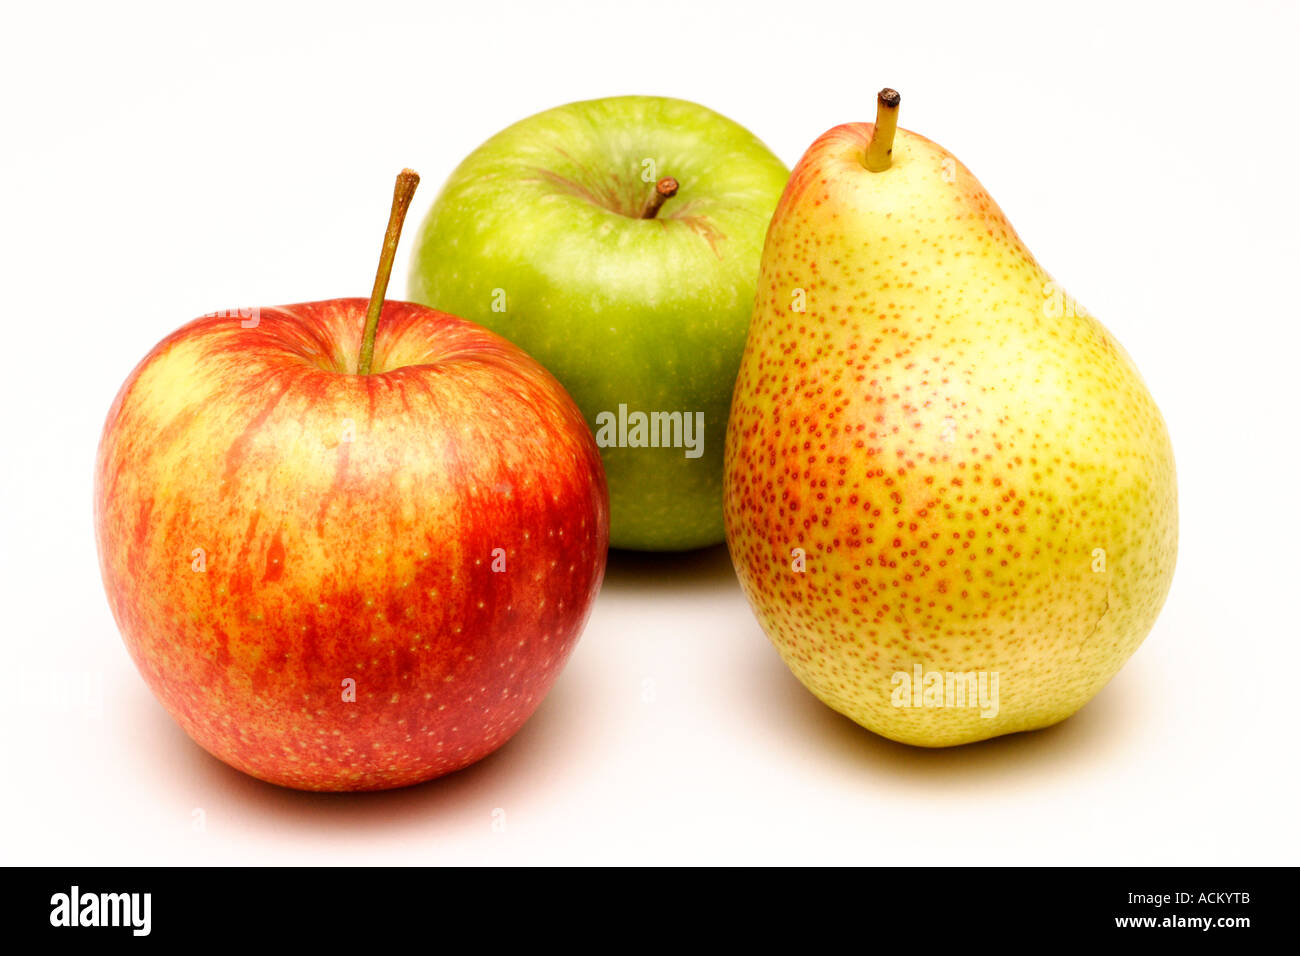 A pear with green and red apples arranged on a white background - Stock Image